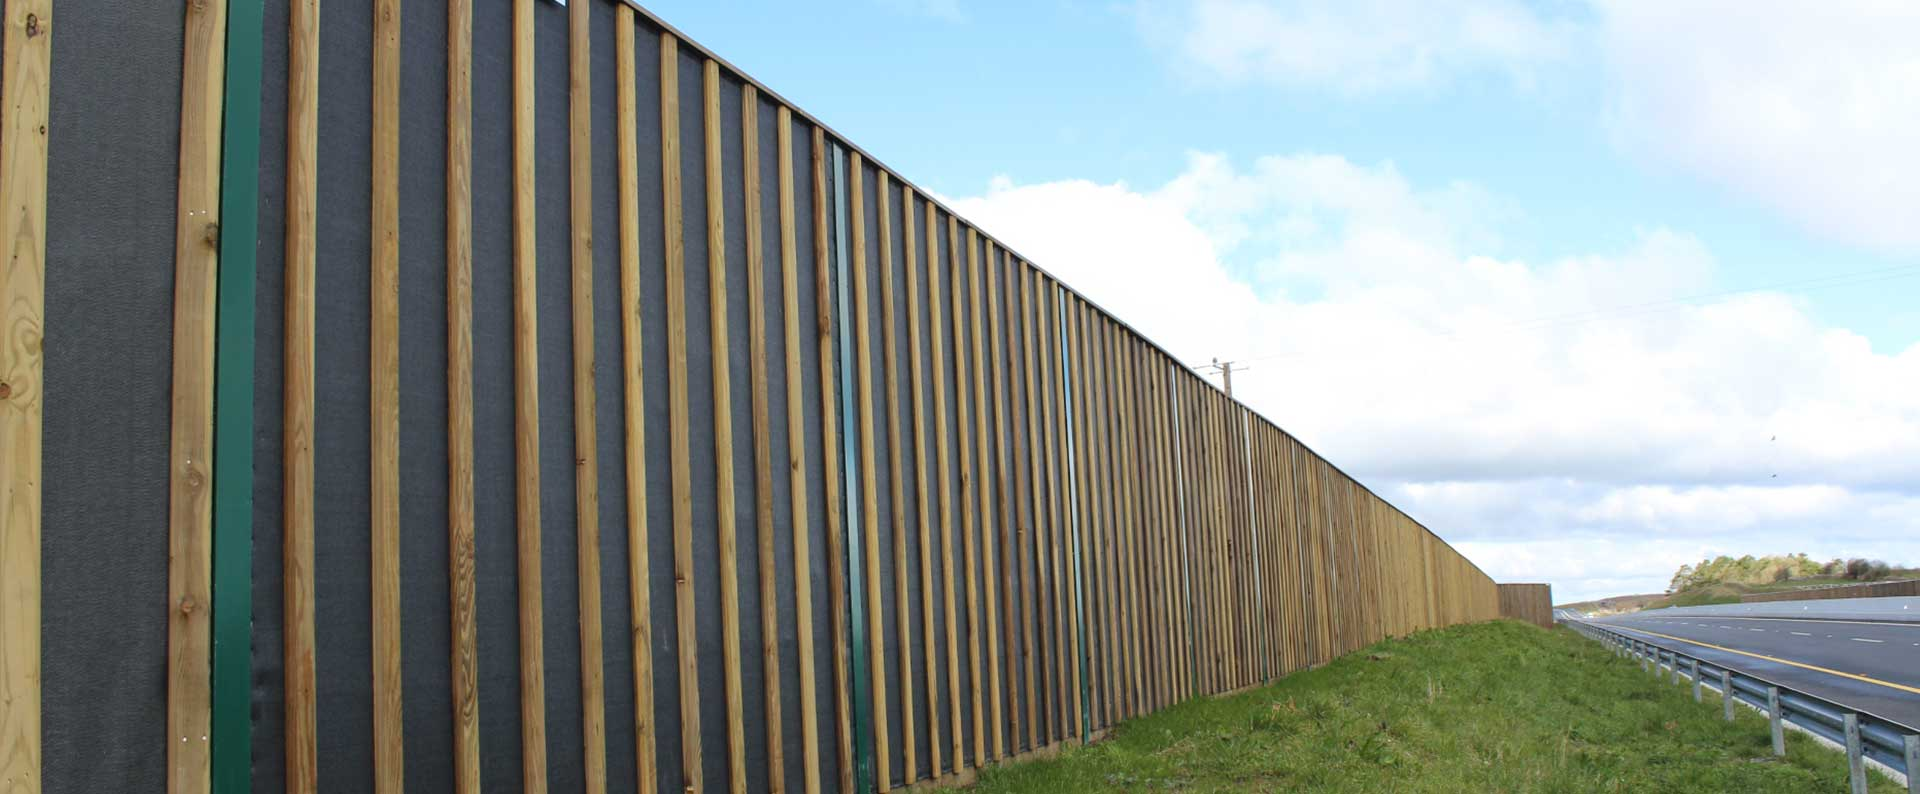 Acoustic Fence Environmental Noise Barriers